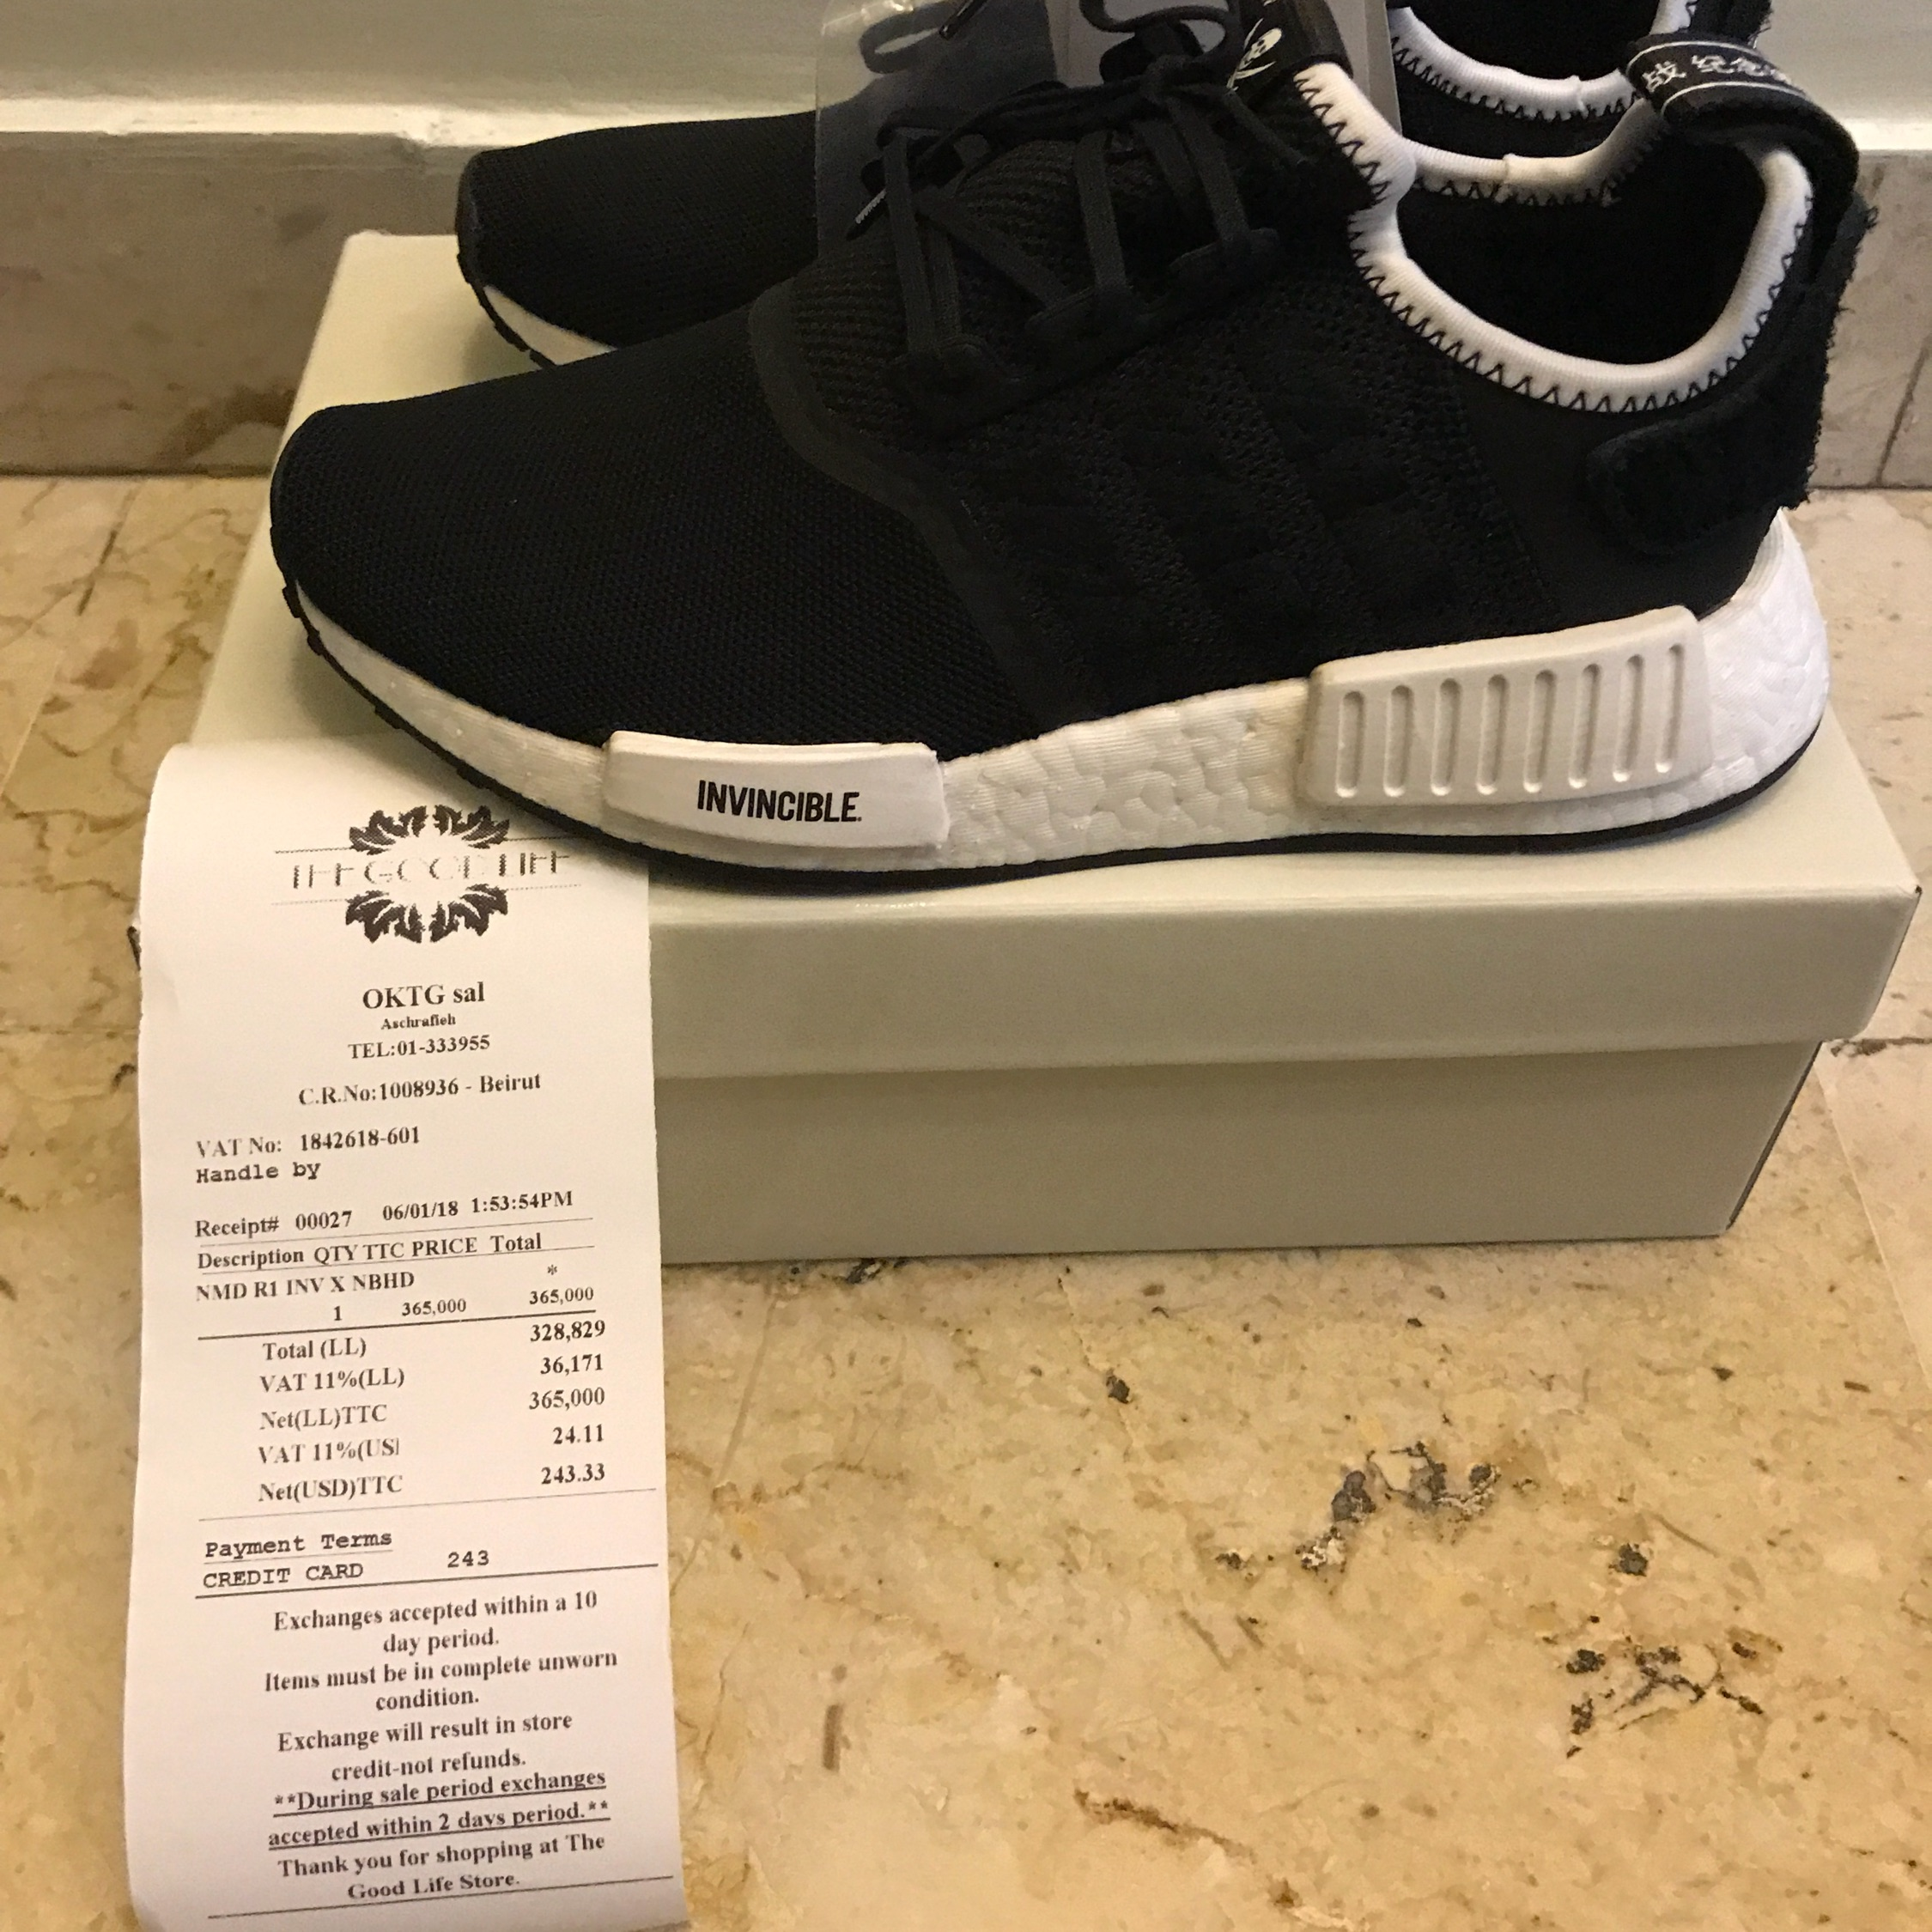 newest e0dfa 0fb1f Adidas Invincible X Neighborhood Nmd R1 Size 5 Us